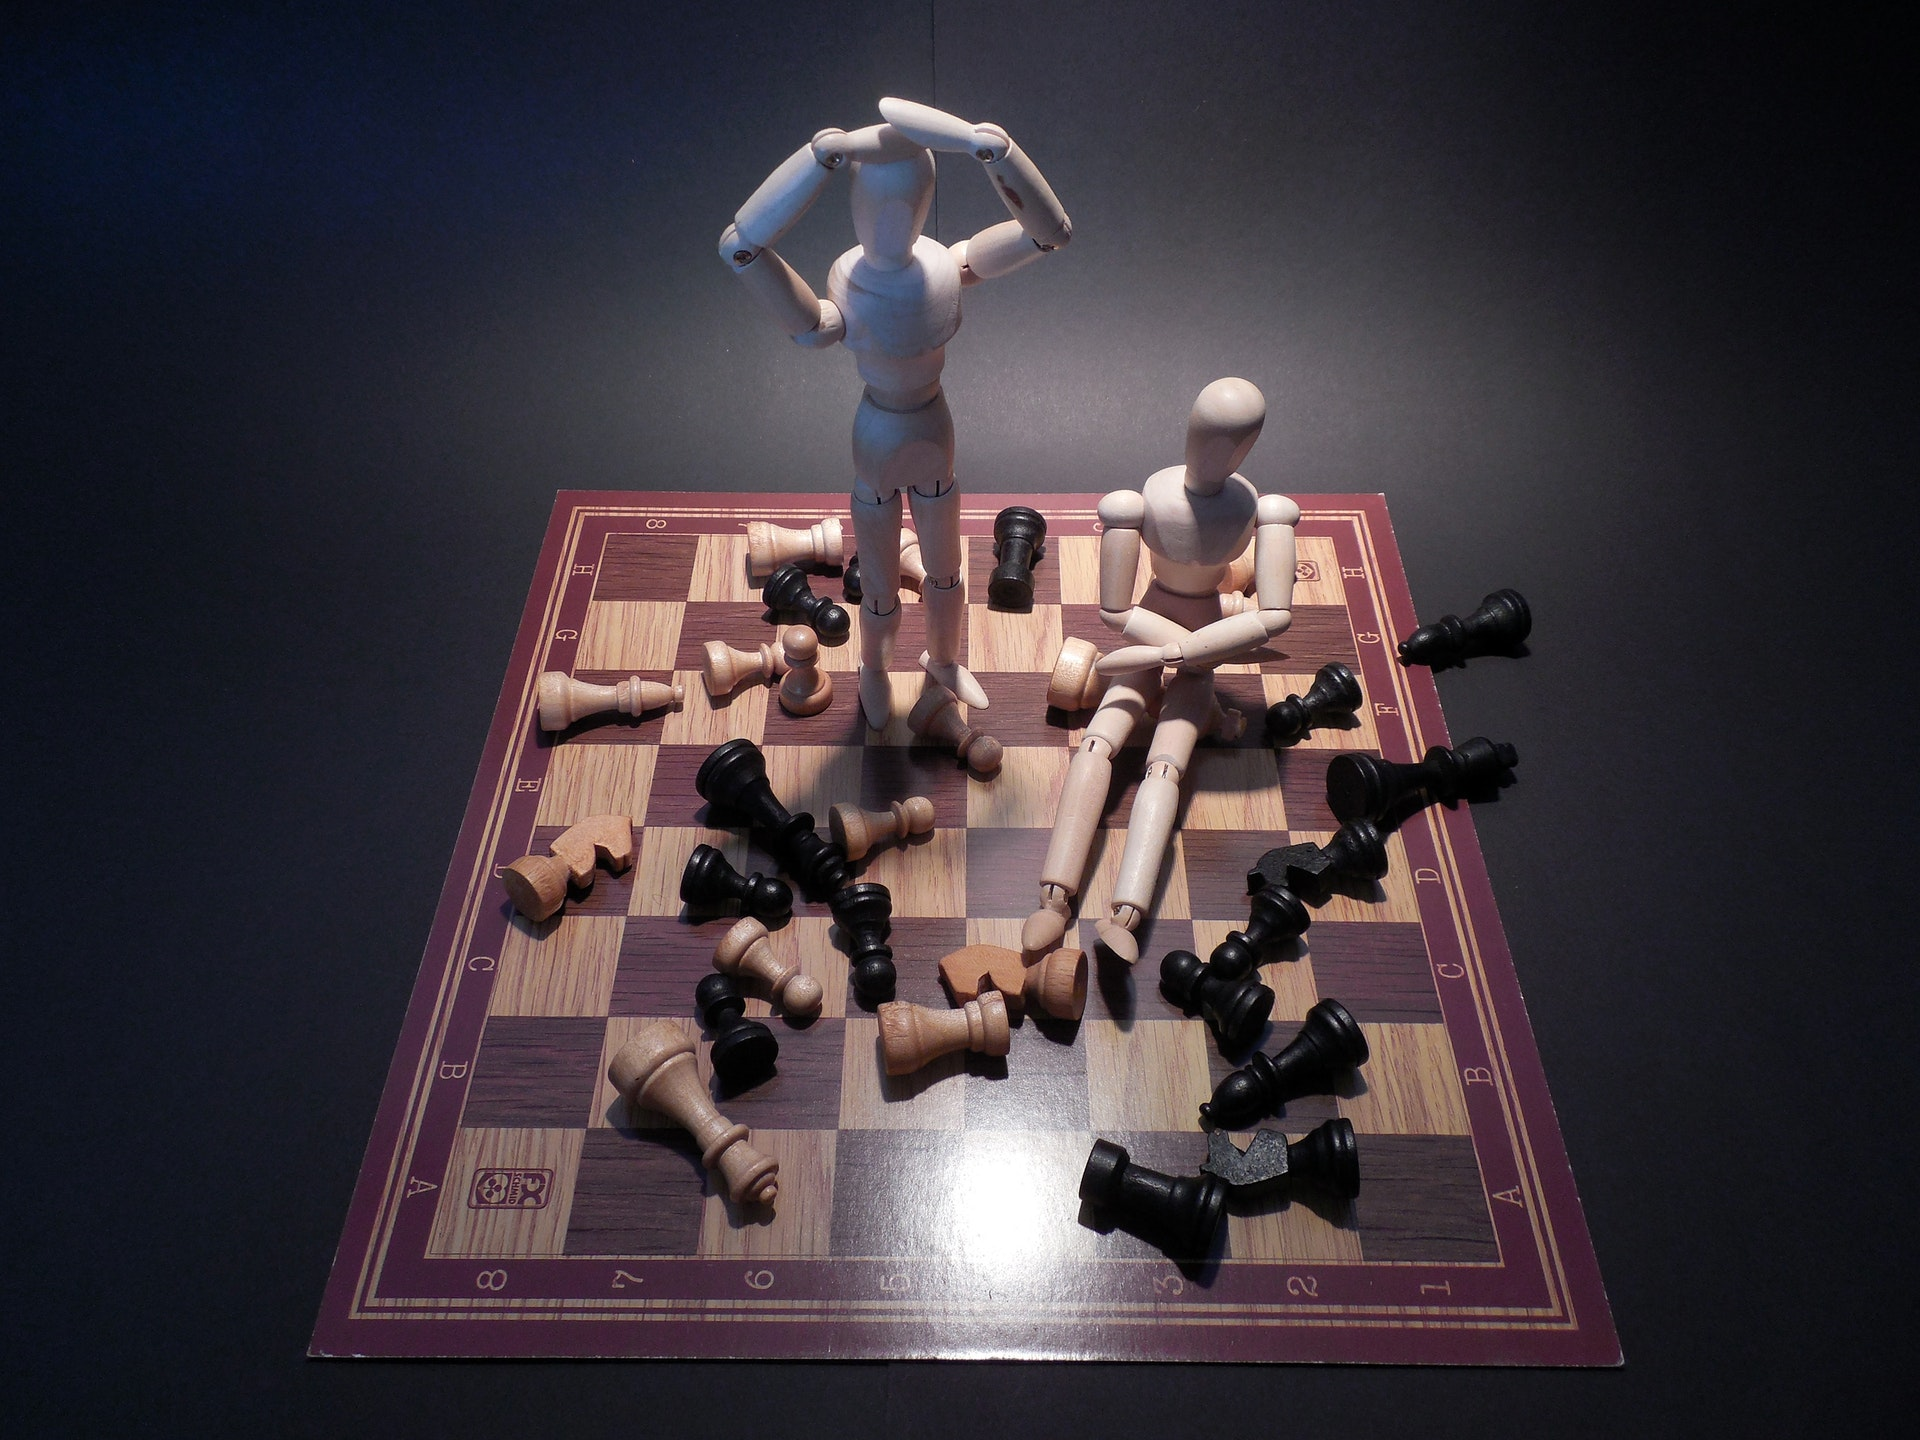 Two wooden dolls on a chess board symbolizing a problem